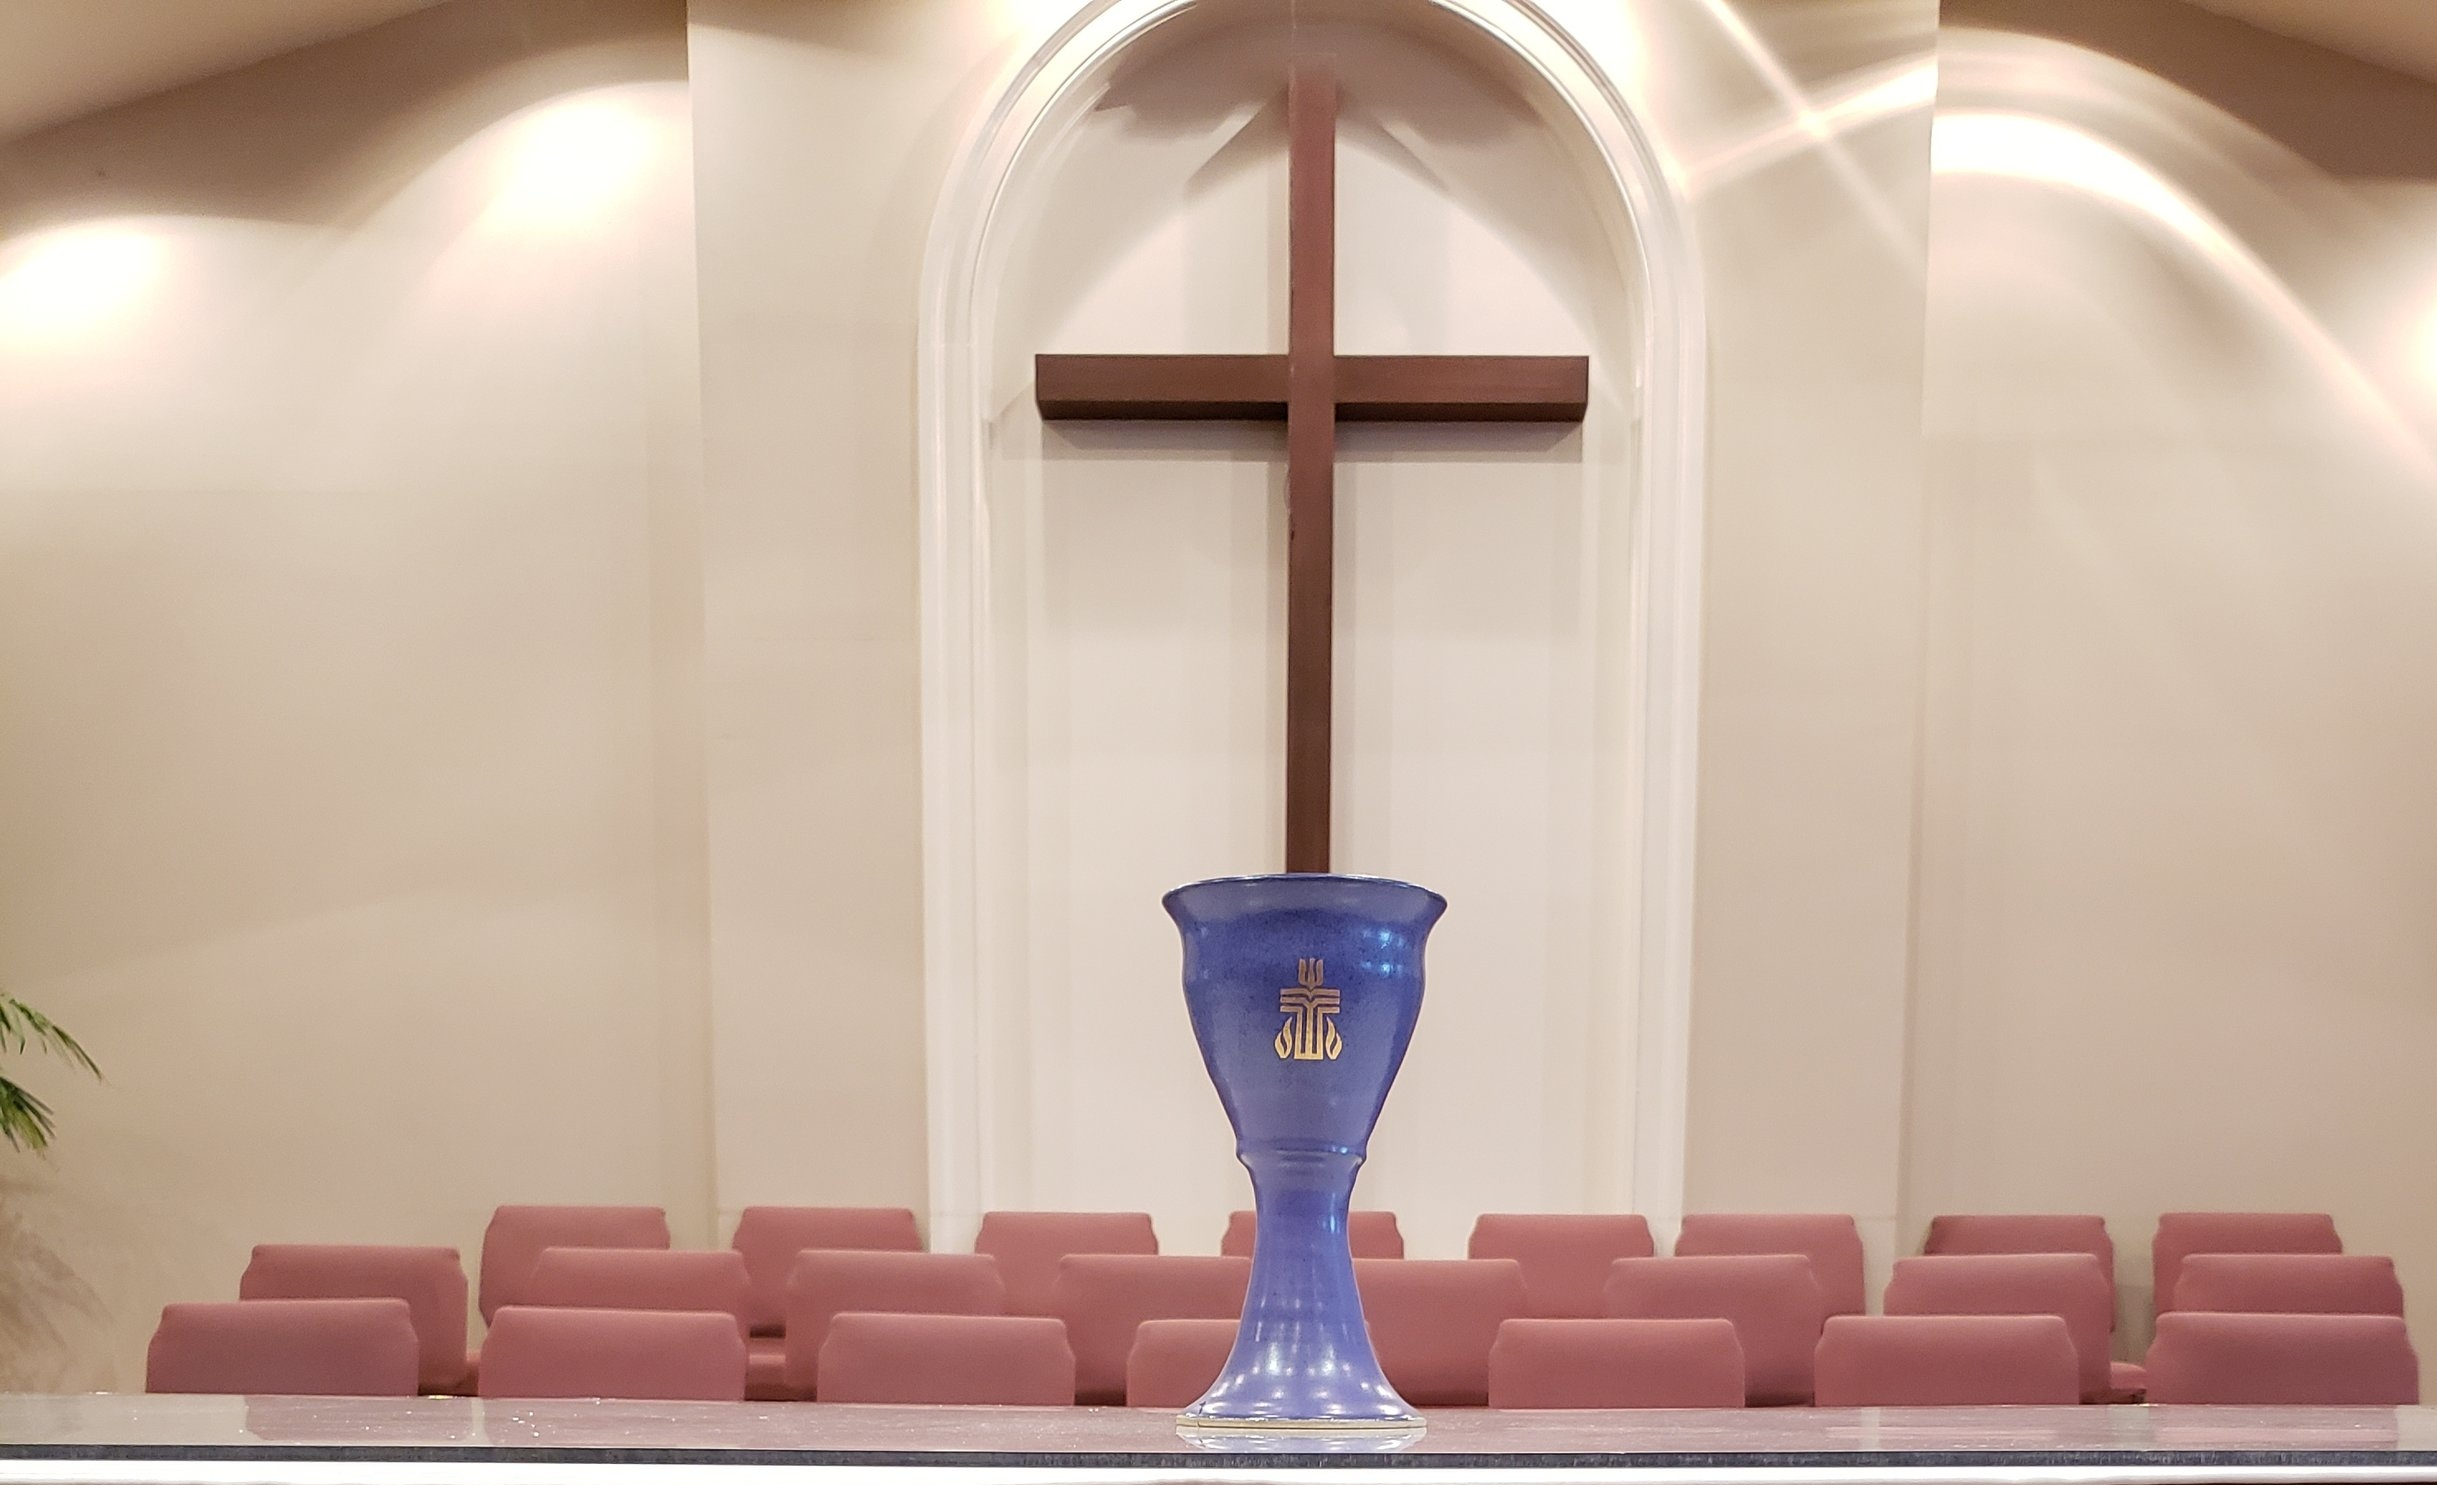 Sunday Worship - 9:30 am Prayer and Praise9:45 am Sunday School for all ages11:00 am Traditional Worship